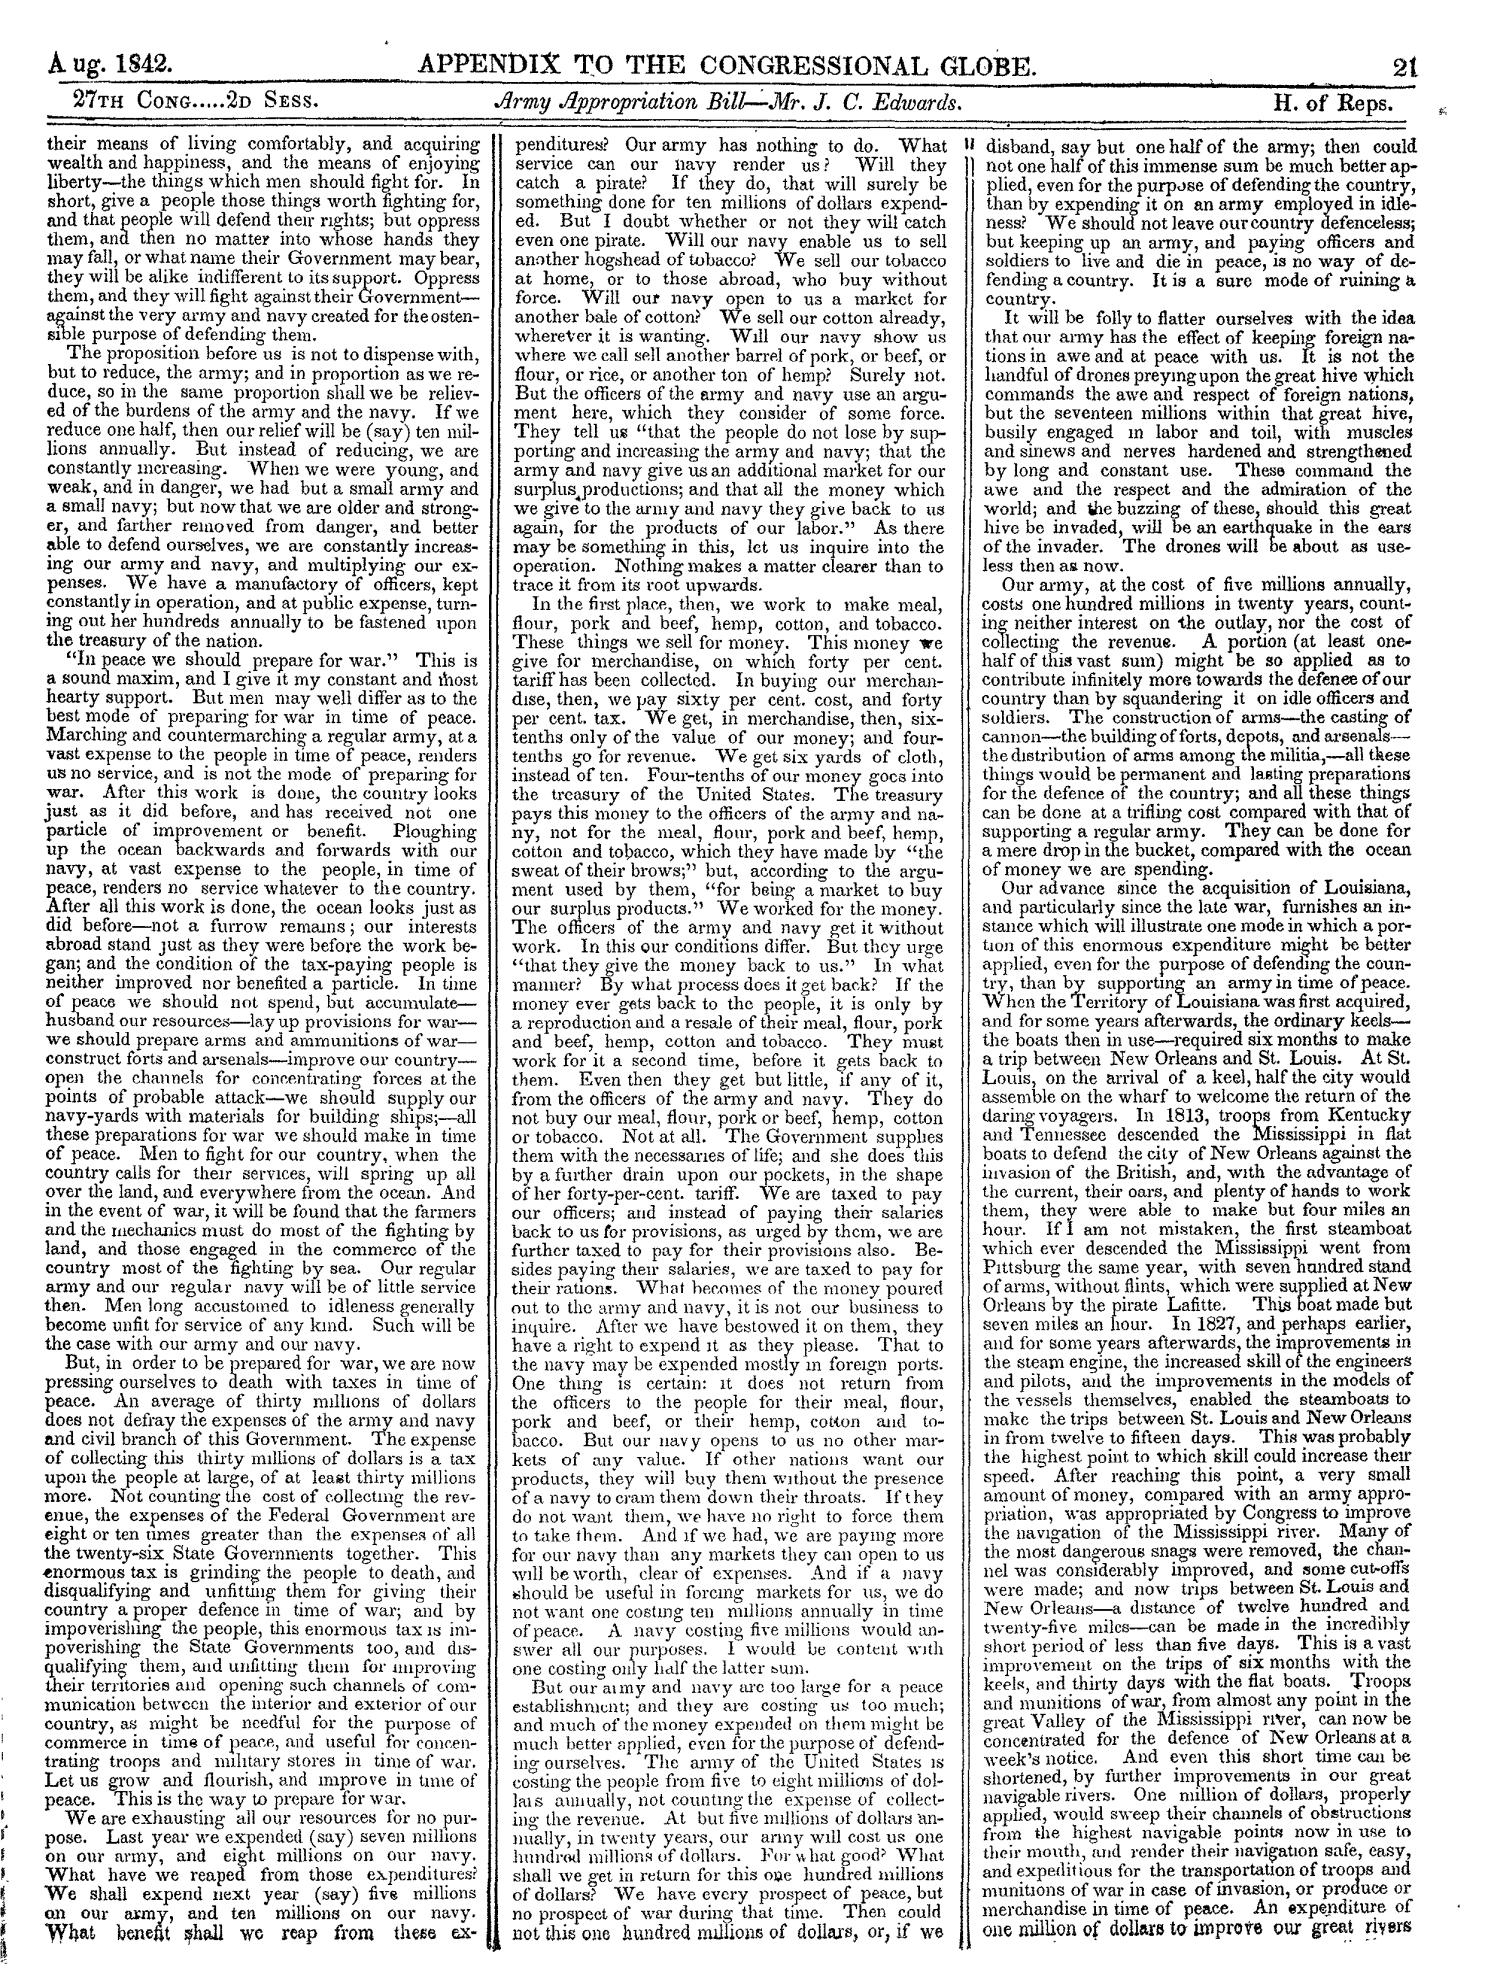 The Congressional Globe, Volume 13, Part 2: Twenty-Eighth Congress, First Session                                                                                                      21